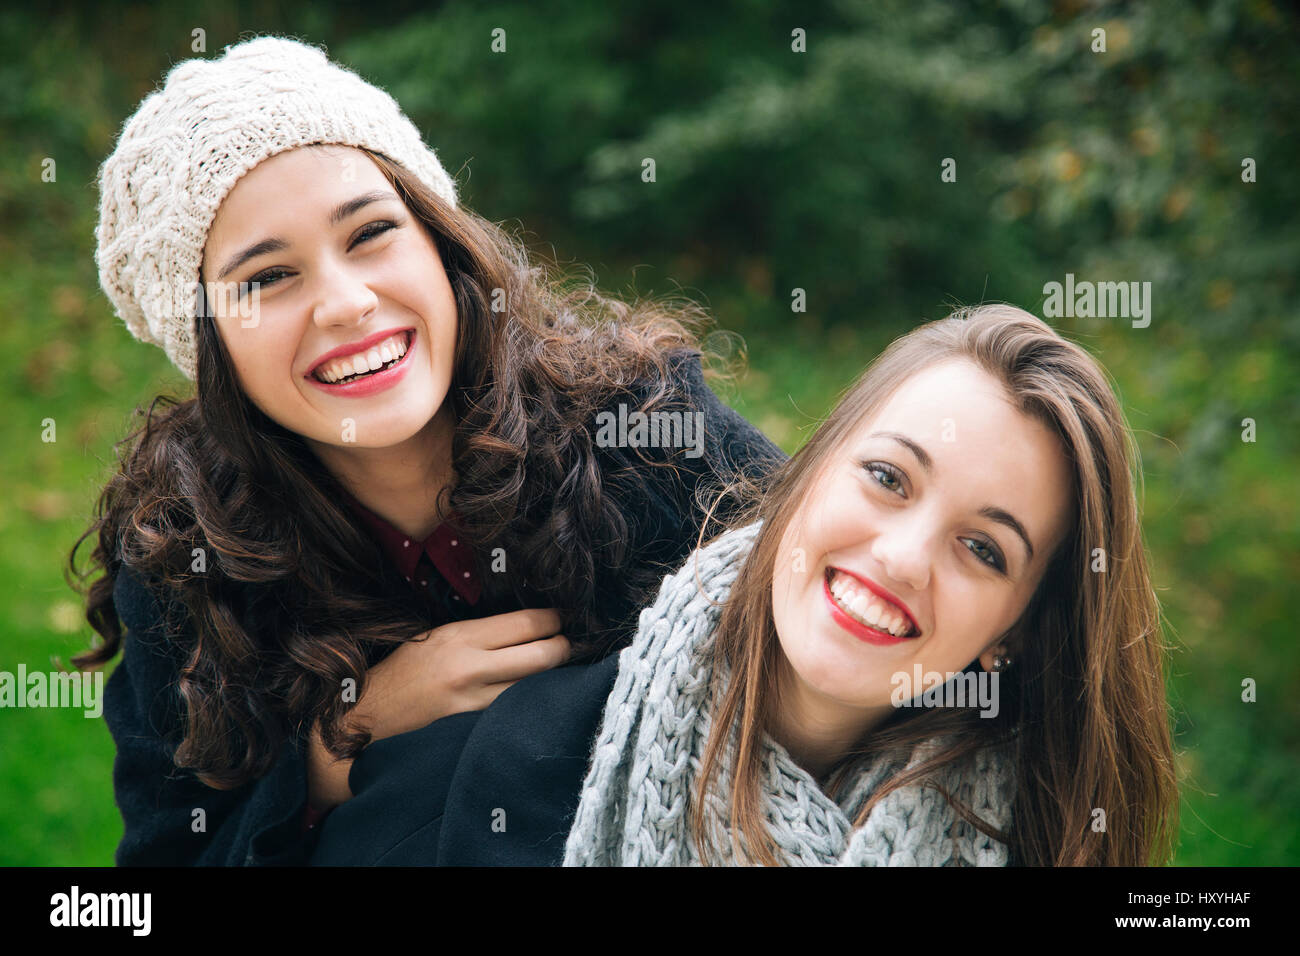 Cute best friend girls a piggyback in winter or fall outdoors stock image